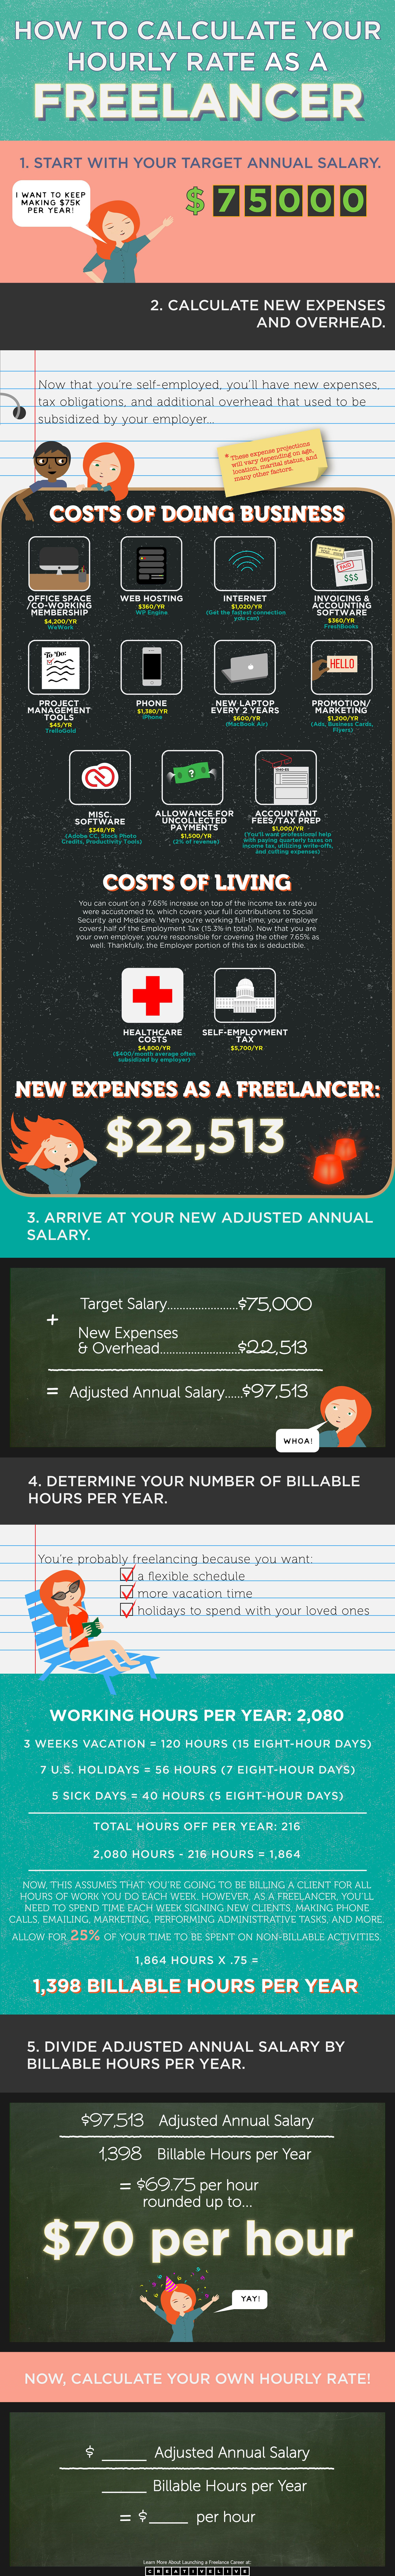 Infographic How To Calculate Your Freelance Hourly Rate Freelance Business Infographic Photography Business